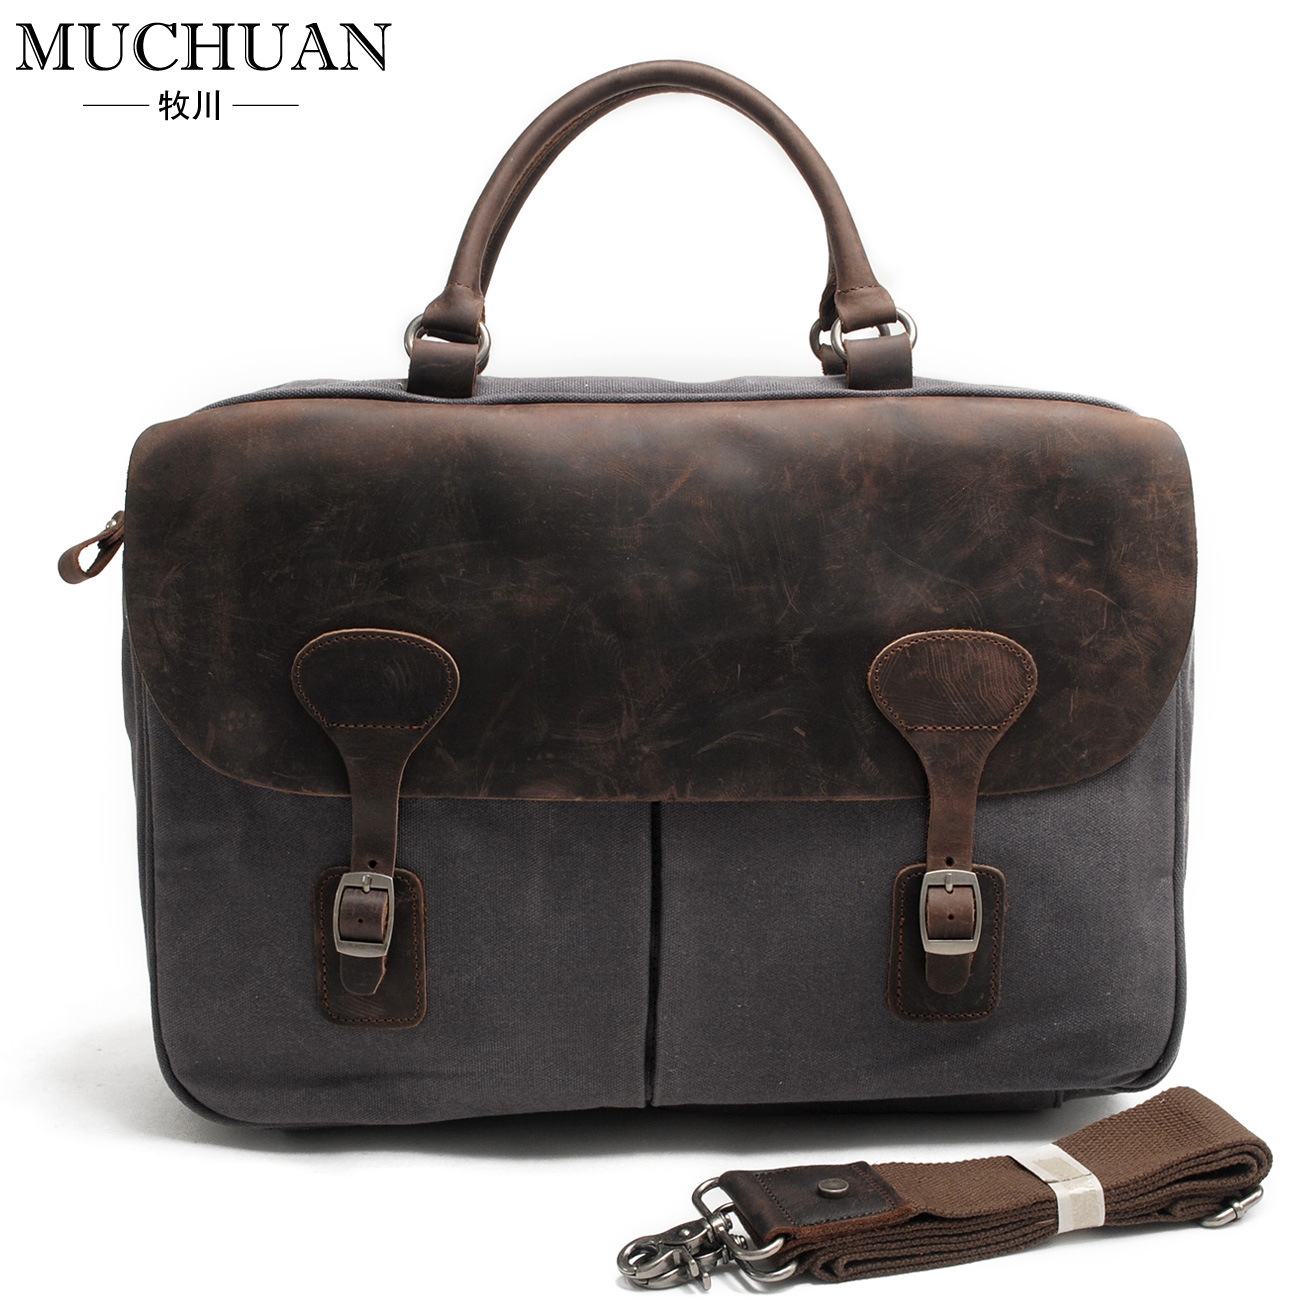 ФОТО Muchuan canvas oil wax canvas bag in Europe and America to restore ancient ways male bag shoulder slope, laptop bag briefcase